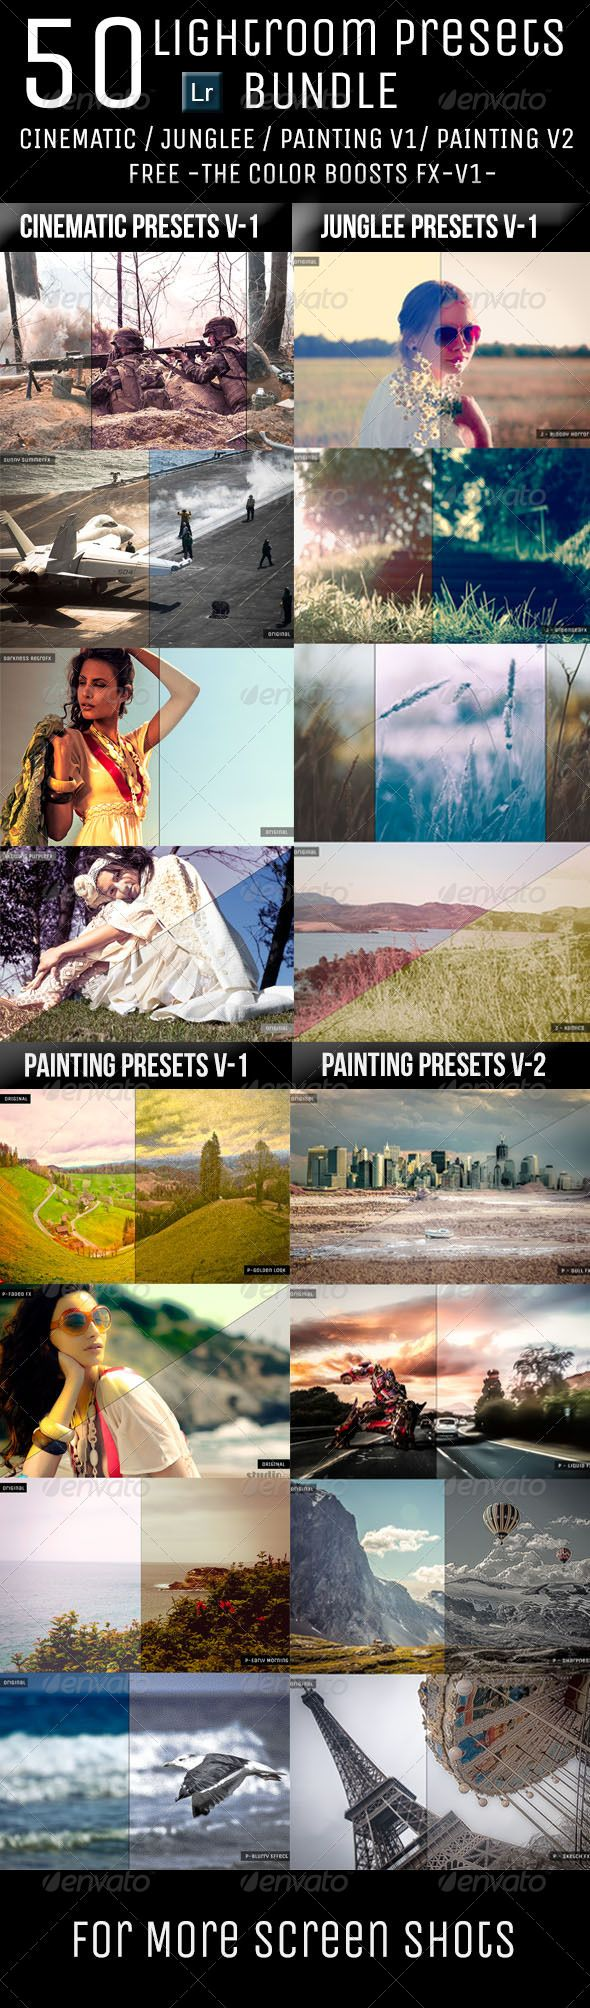 50 #Lightroom #Presets Bundle